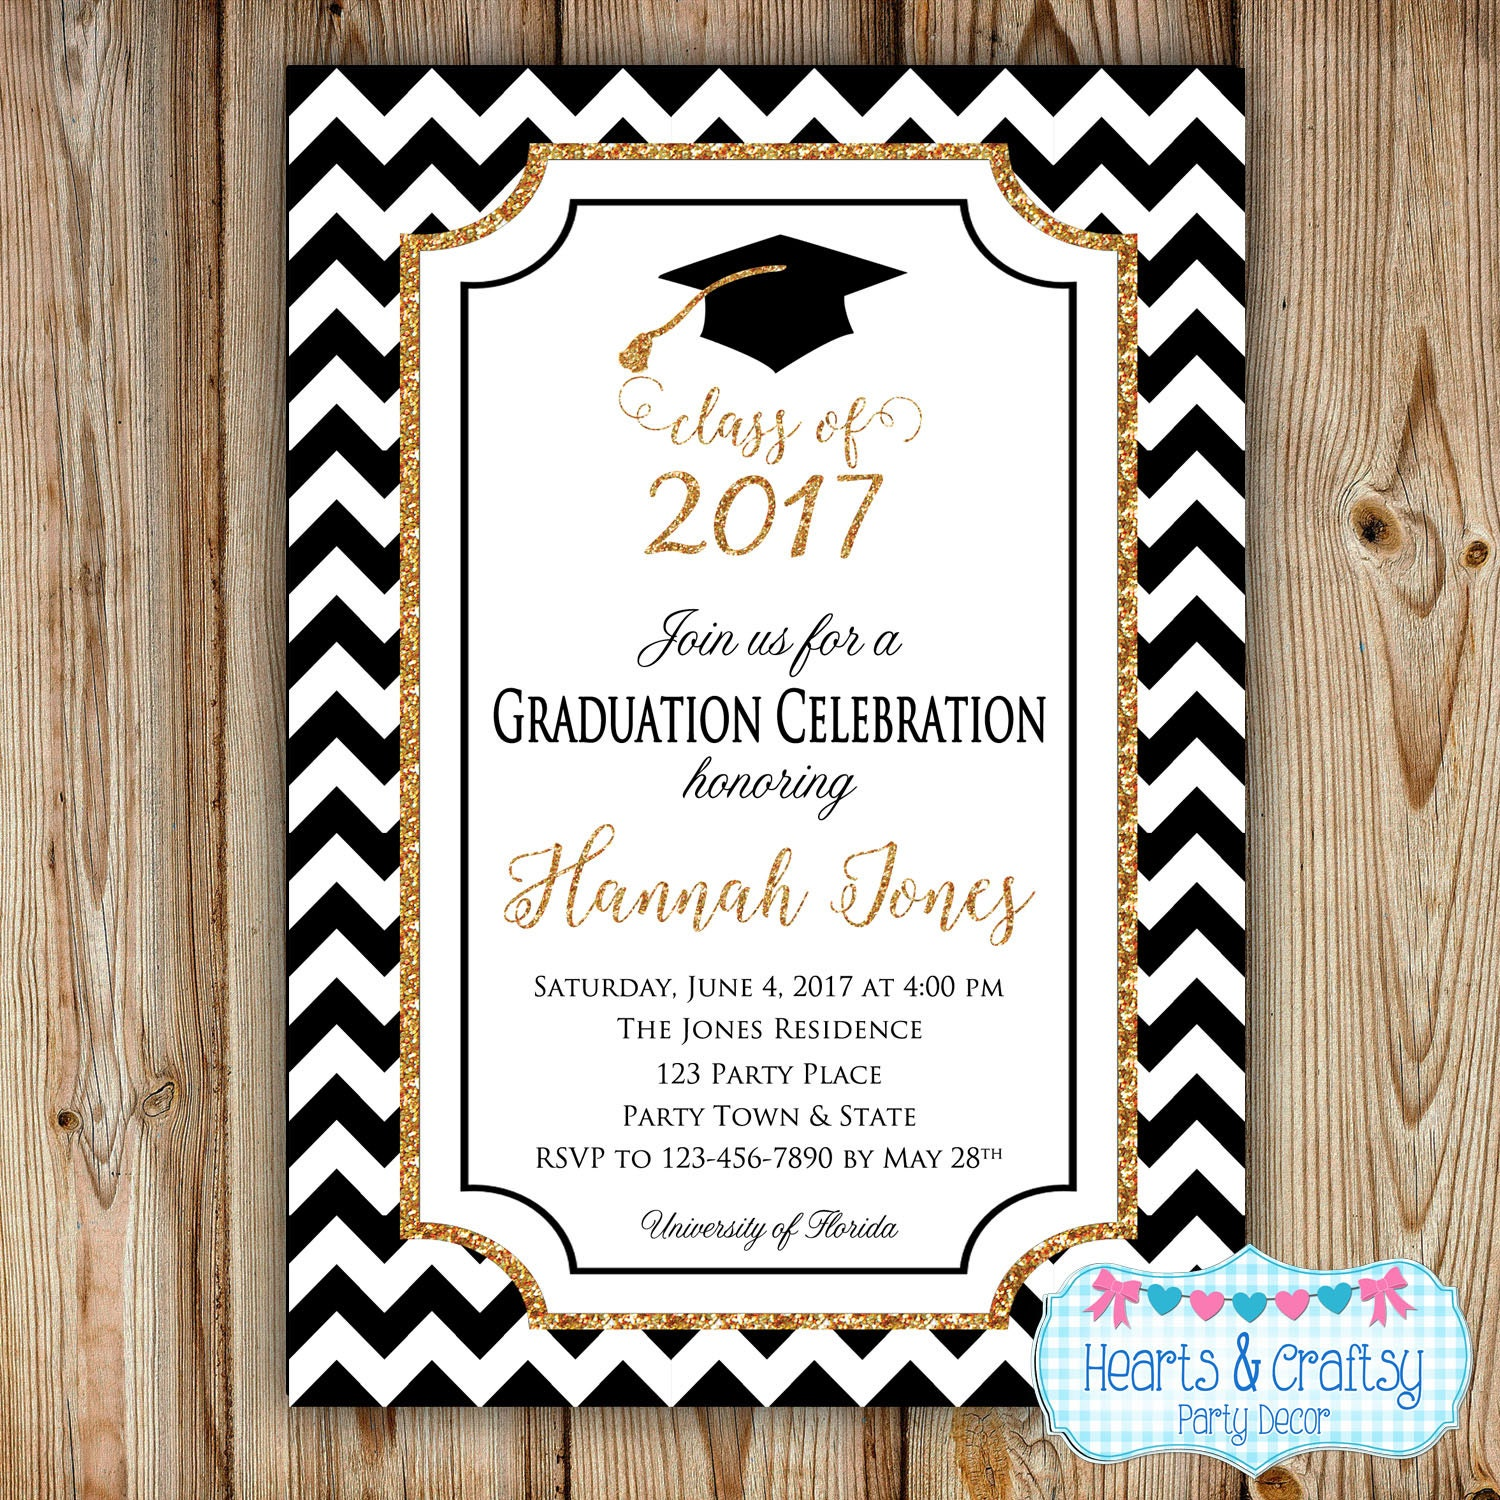 graduation party invitation college graduation invitation. Black Bedroom Furniture Sets. Home Design Ideas